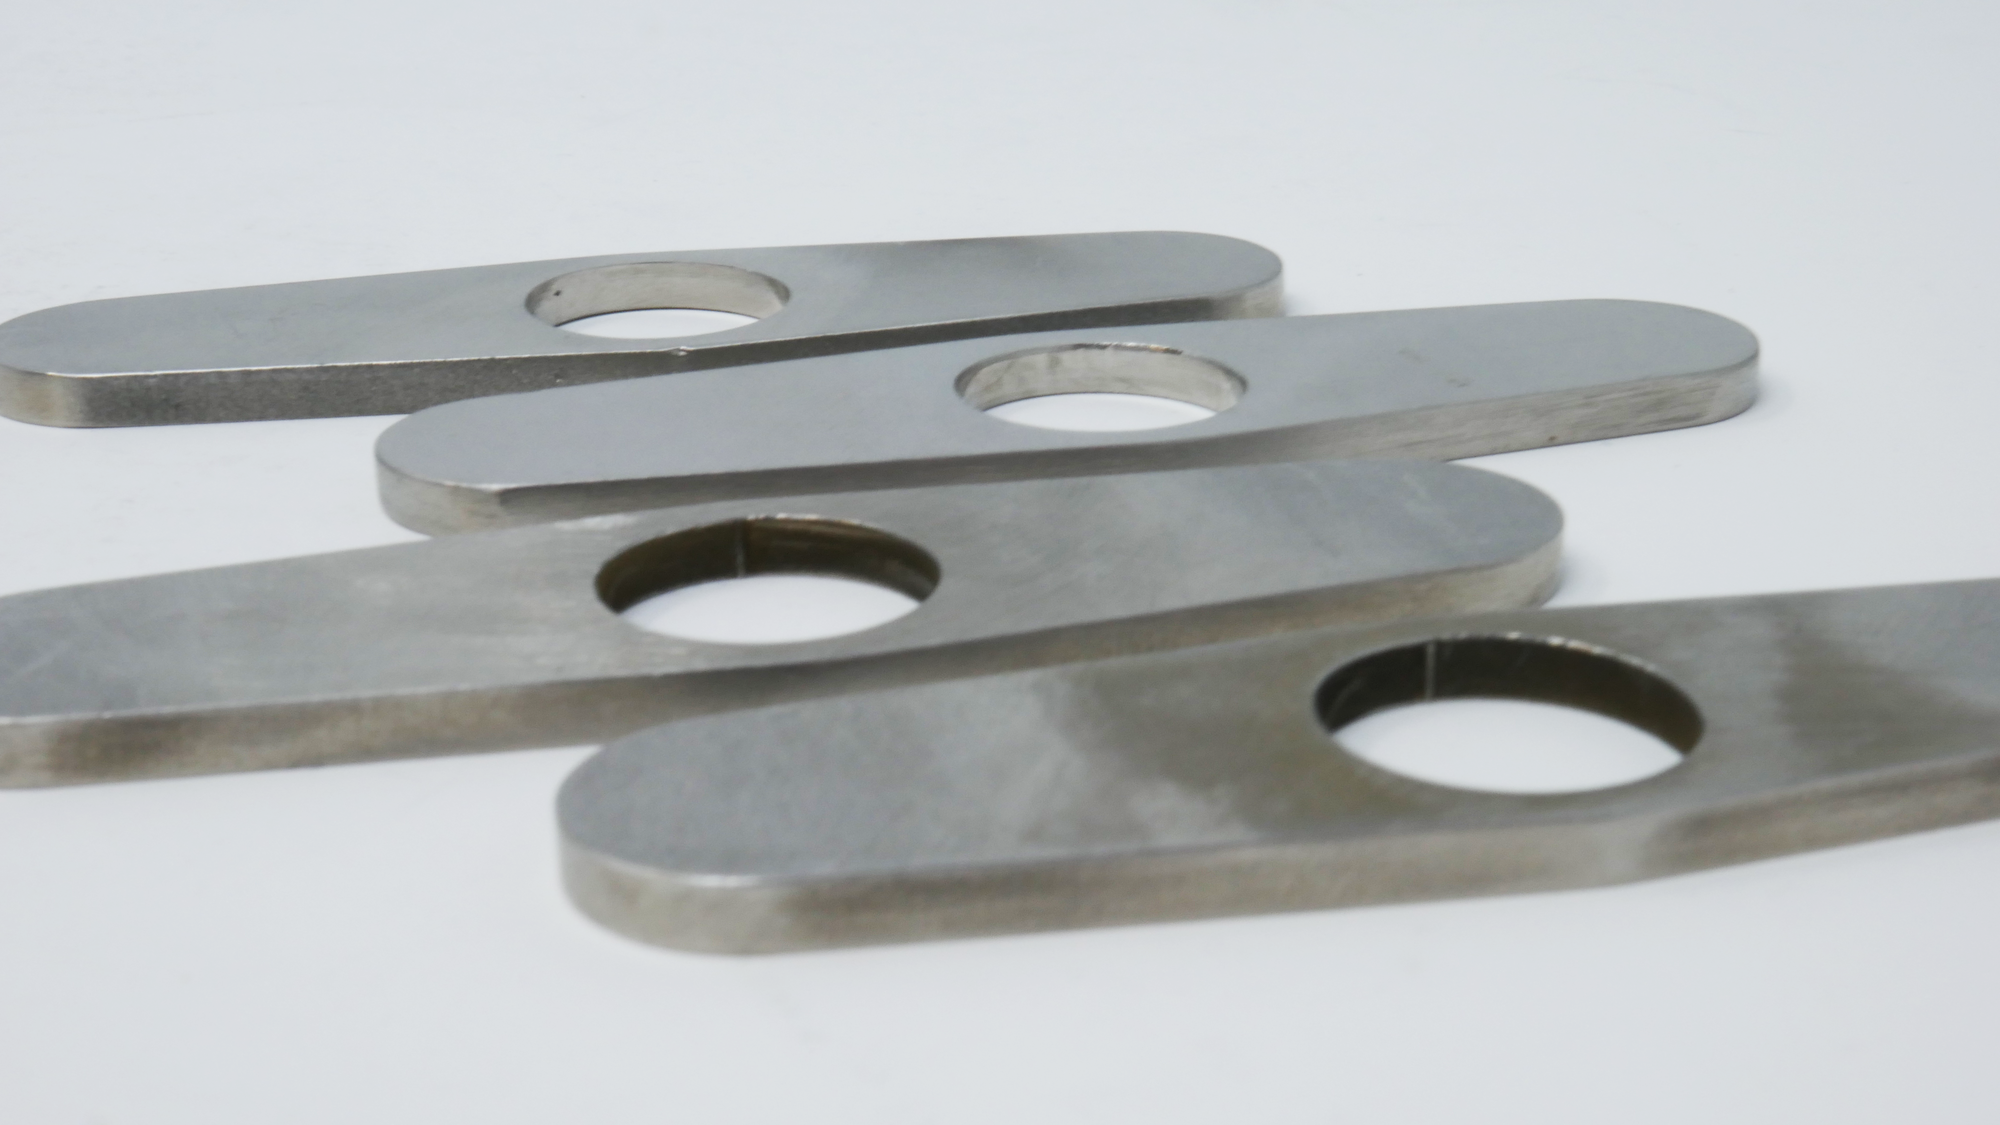 5 axis water jet cutting services near me